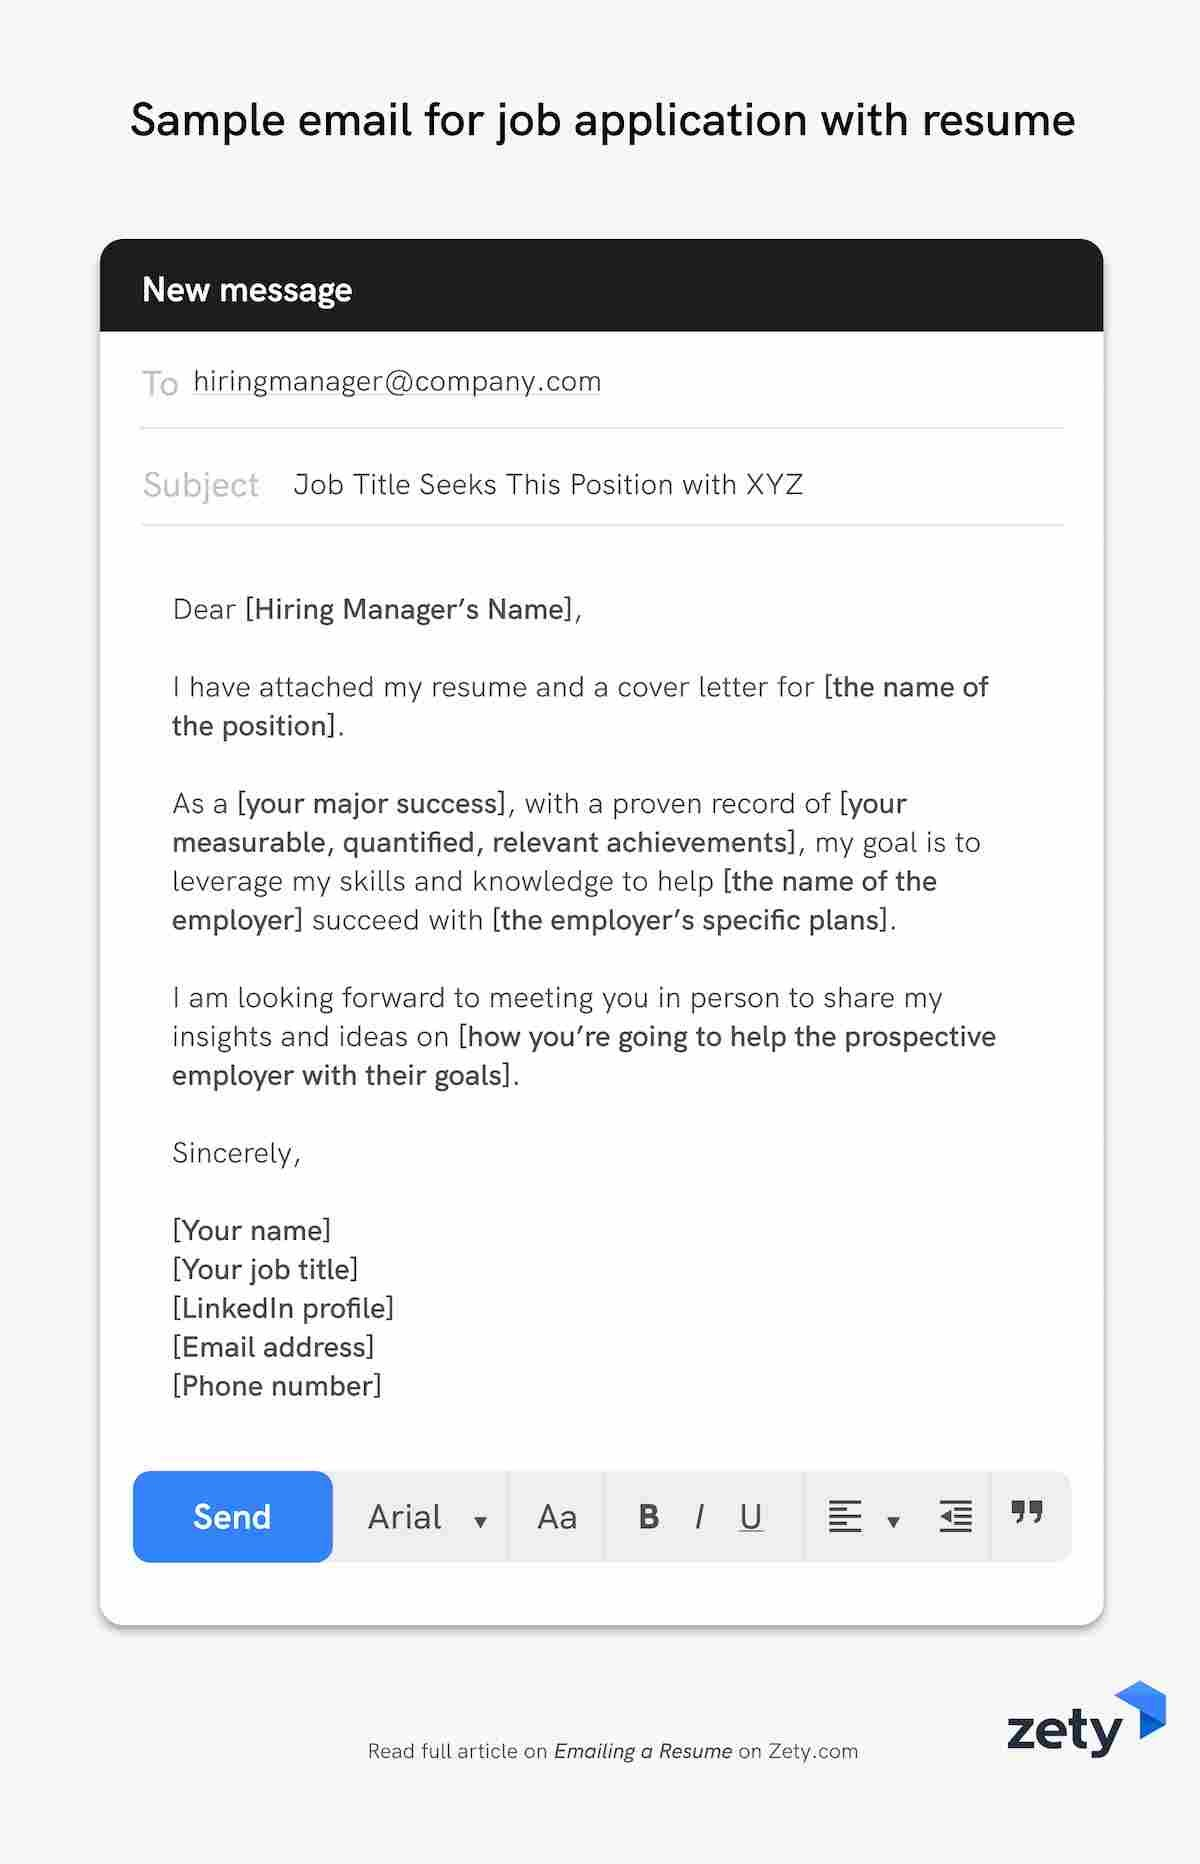 emailing resume job application email samples writing an with sample for excellent words Resume Writing An Email With Resume